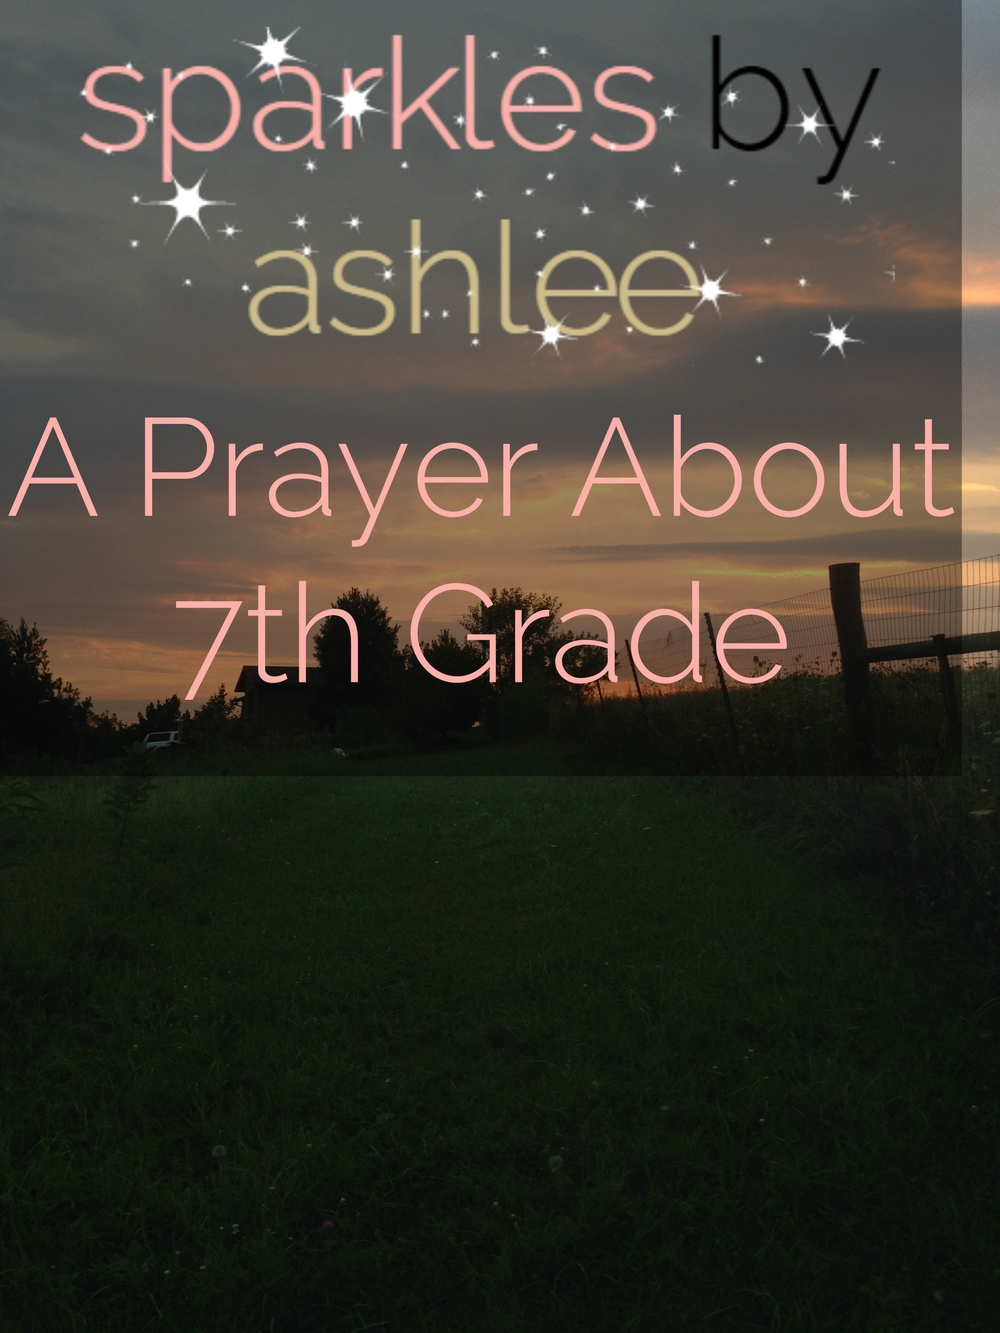 A-Prayer-About-7th-Grade-Sparkles-by-Ashlee.jpg